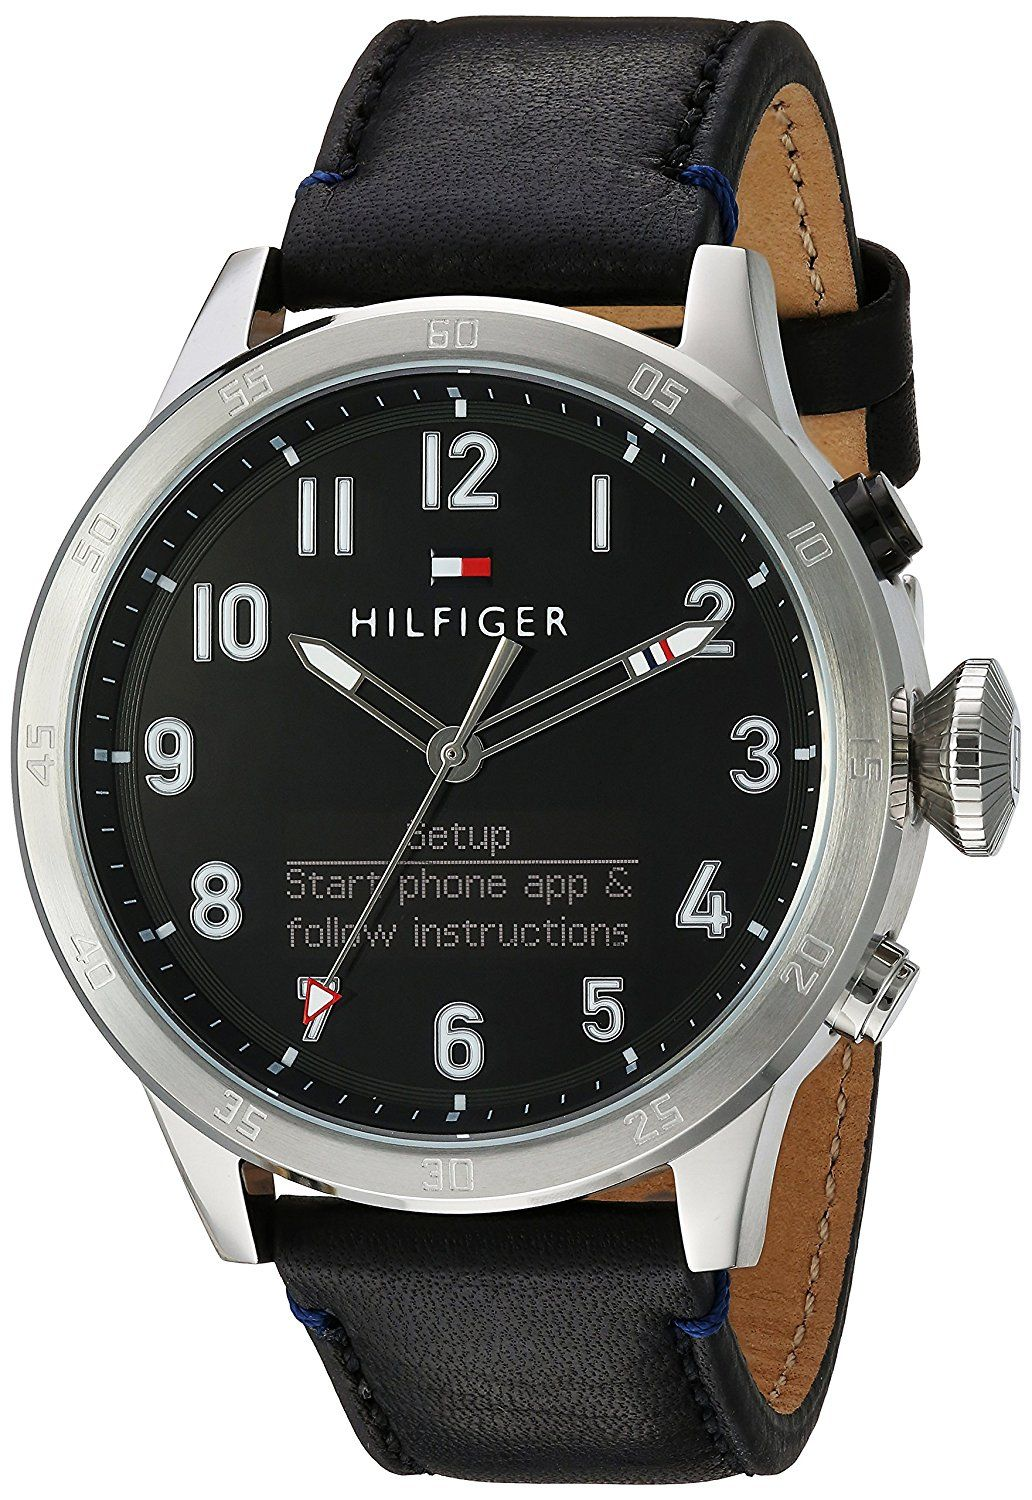 cc21257ff0d Tommy Hilfiger Men s  TH 24 7  Quartz Stainless Steel and Leather Smart  Watch